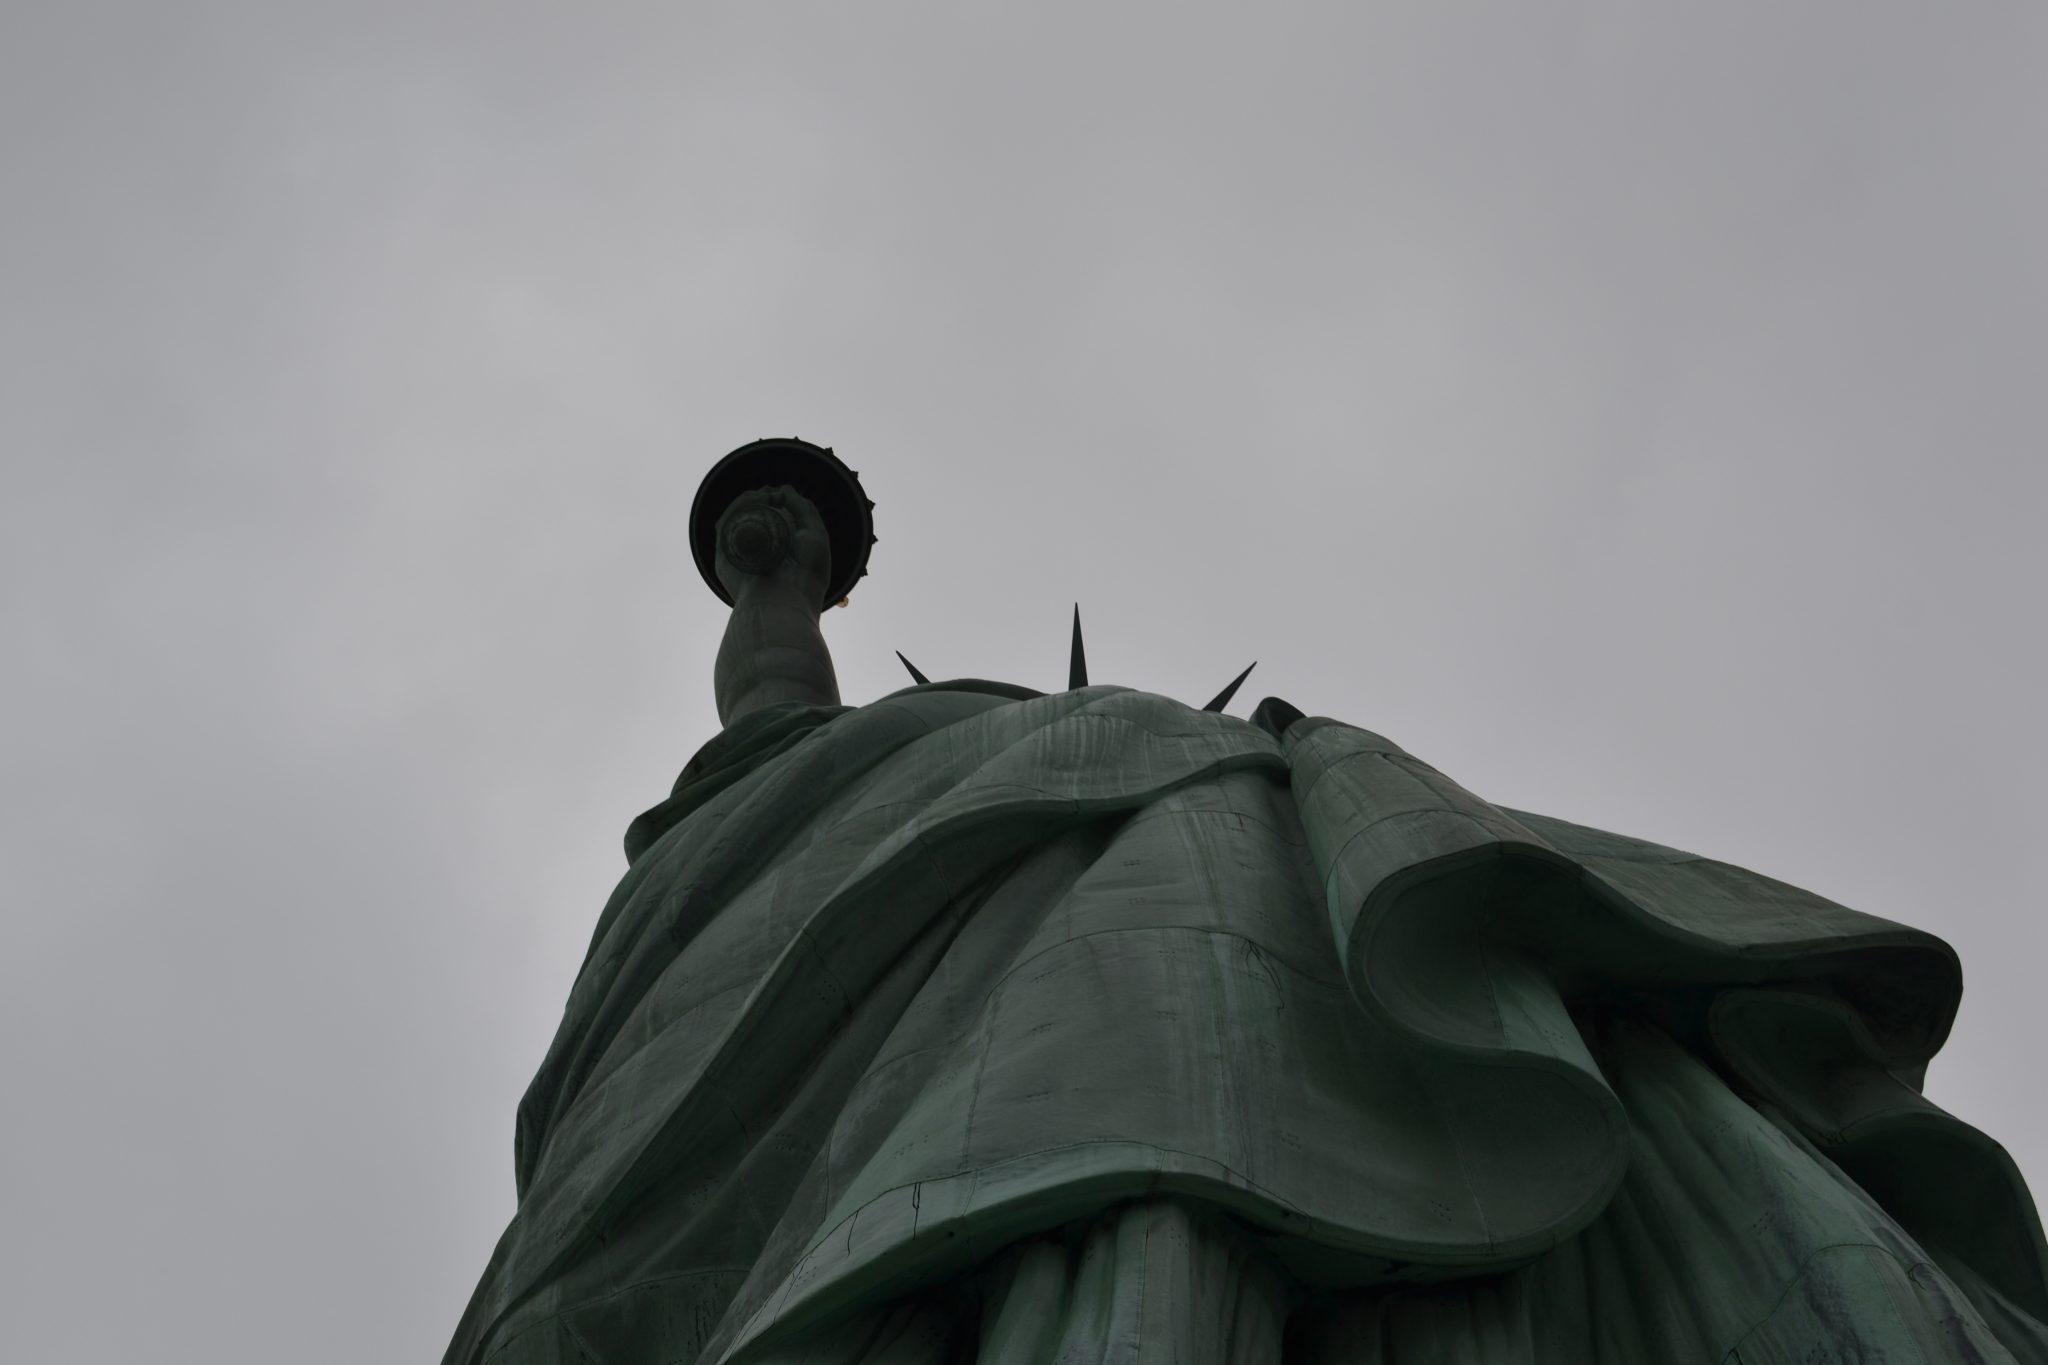 New York Part 4: Ellis Island & Statue of Liberty - dsc 0449